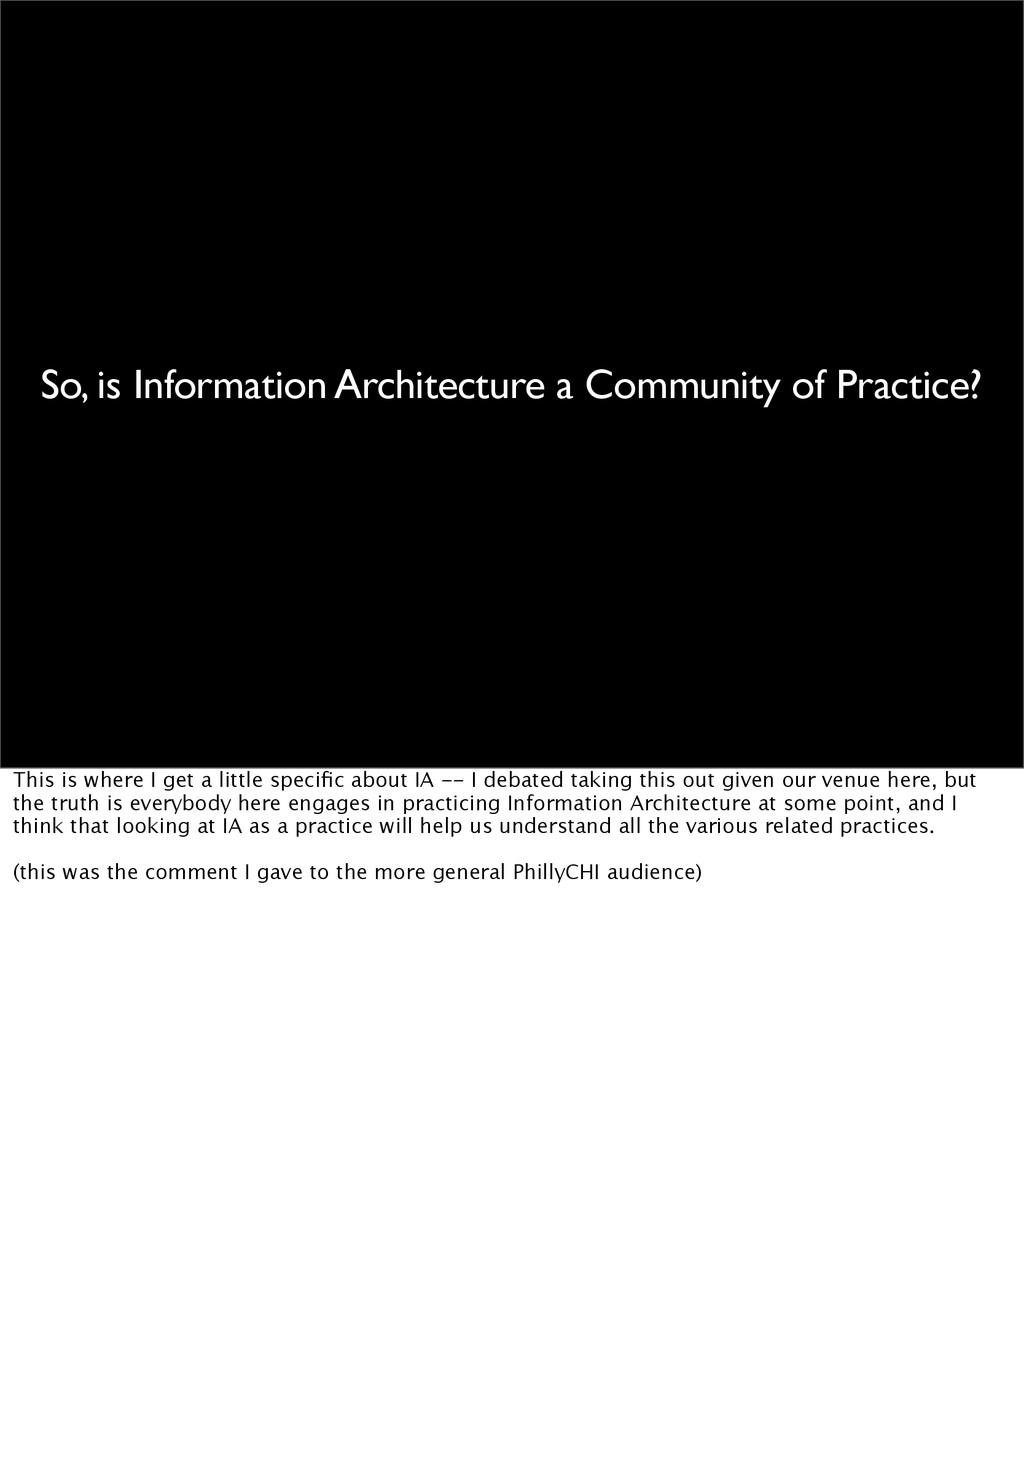 So, is Information Architecture a Community of ...